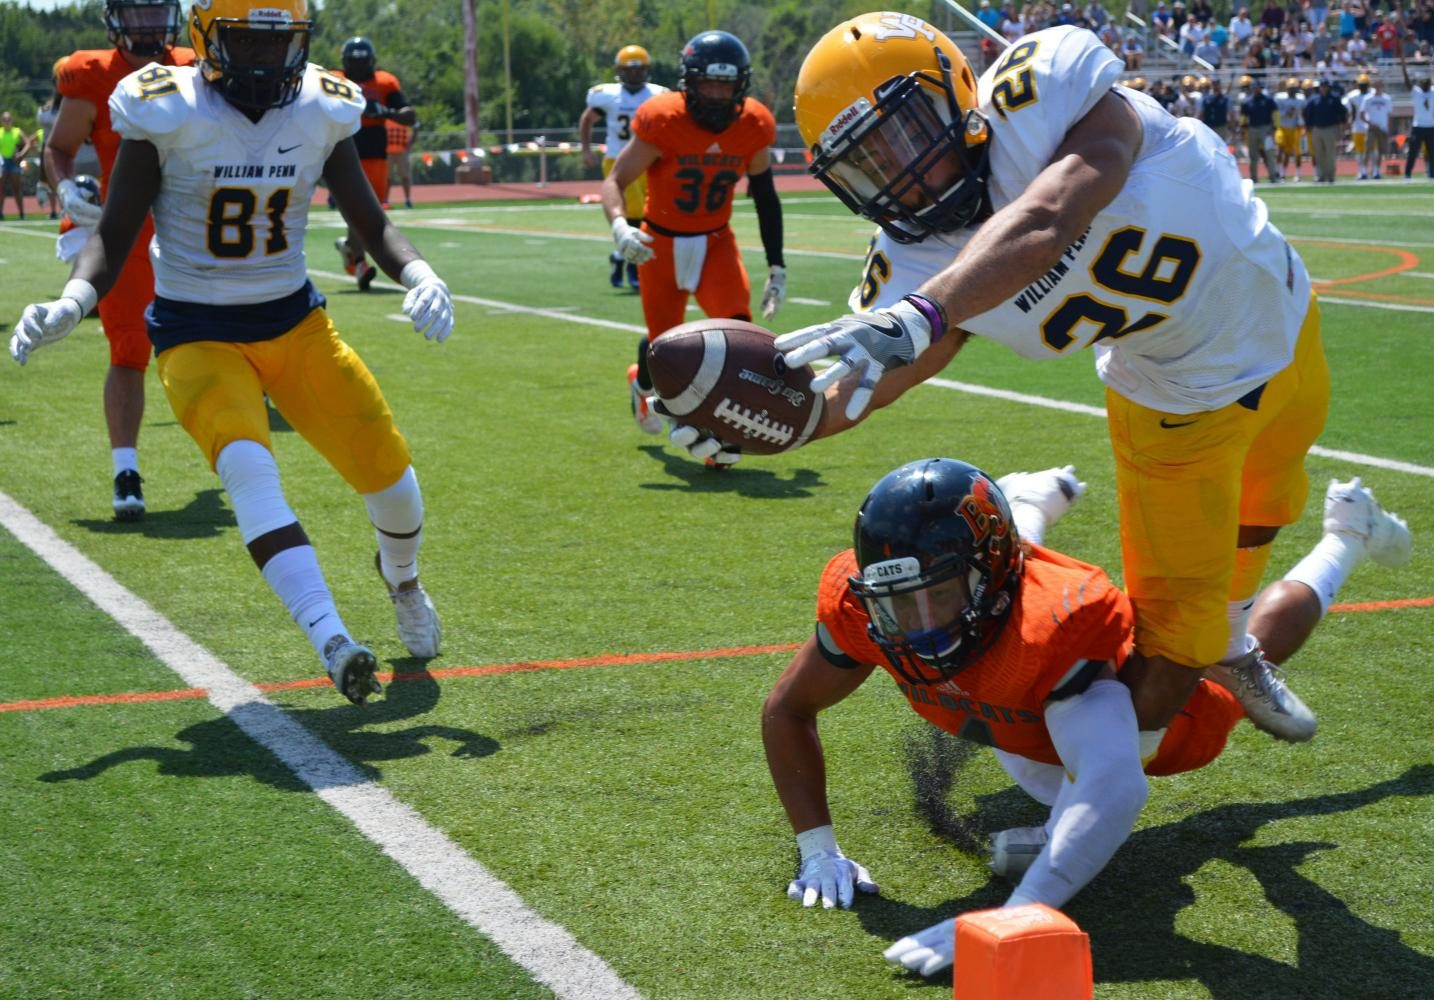 A Wildcat defender attempts to block a William Penn running back from stretching out over the goal line. The Statesmen were ahead 27-24 in the 4th quarter until the Wildcats answered with 1:30 left on the clock to end the game 31-27.